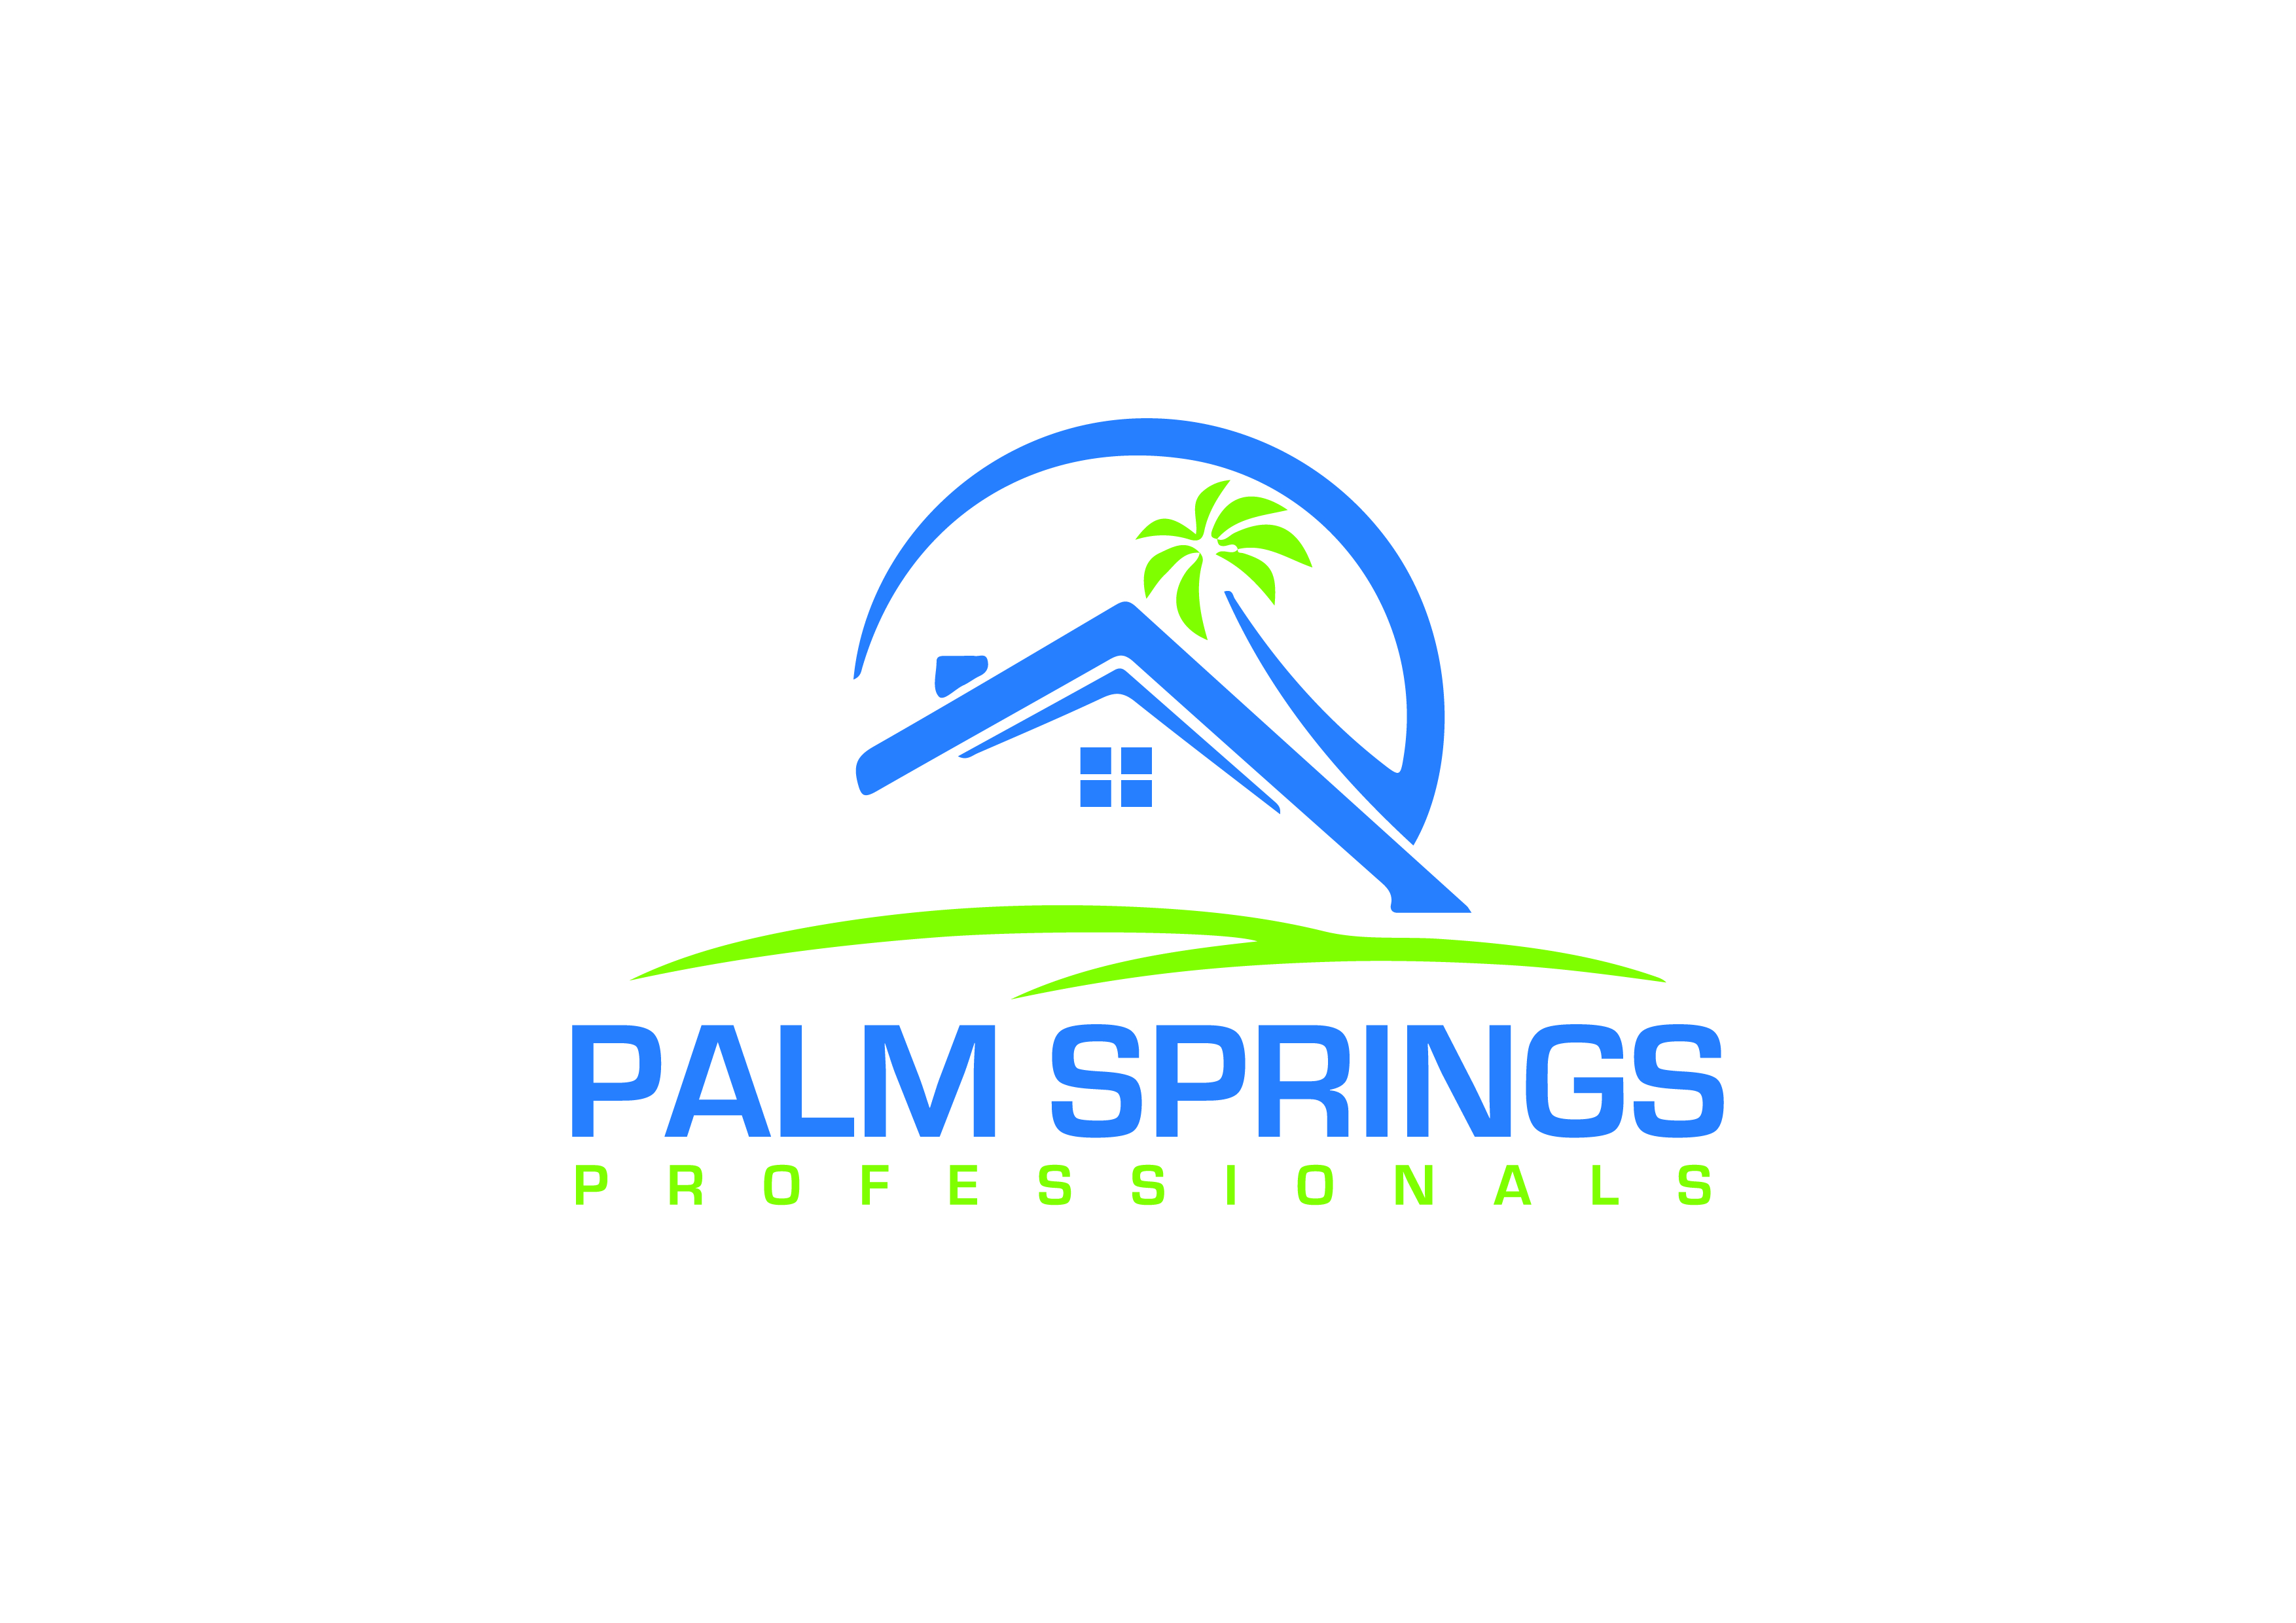 Palm Springs Professionals final-01